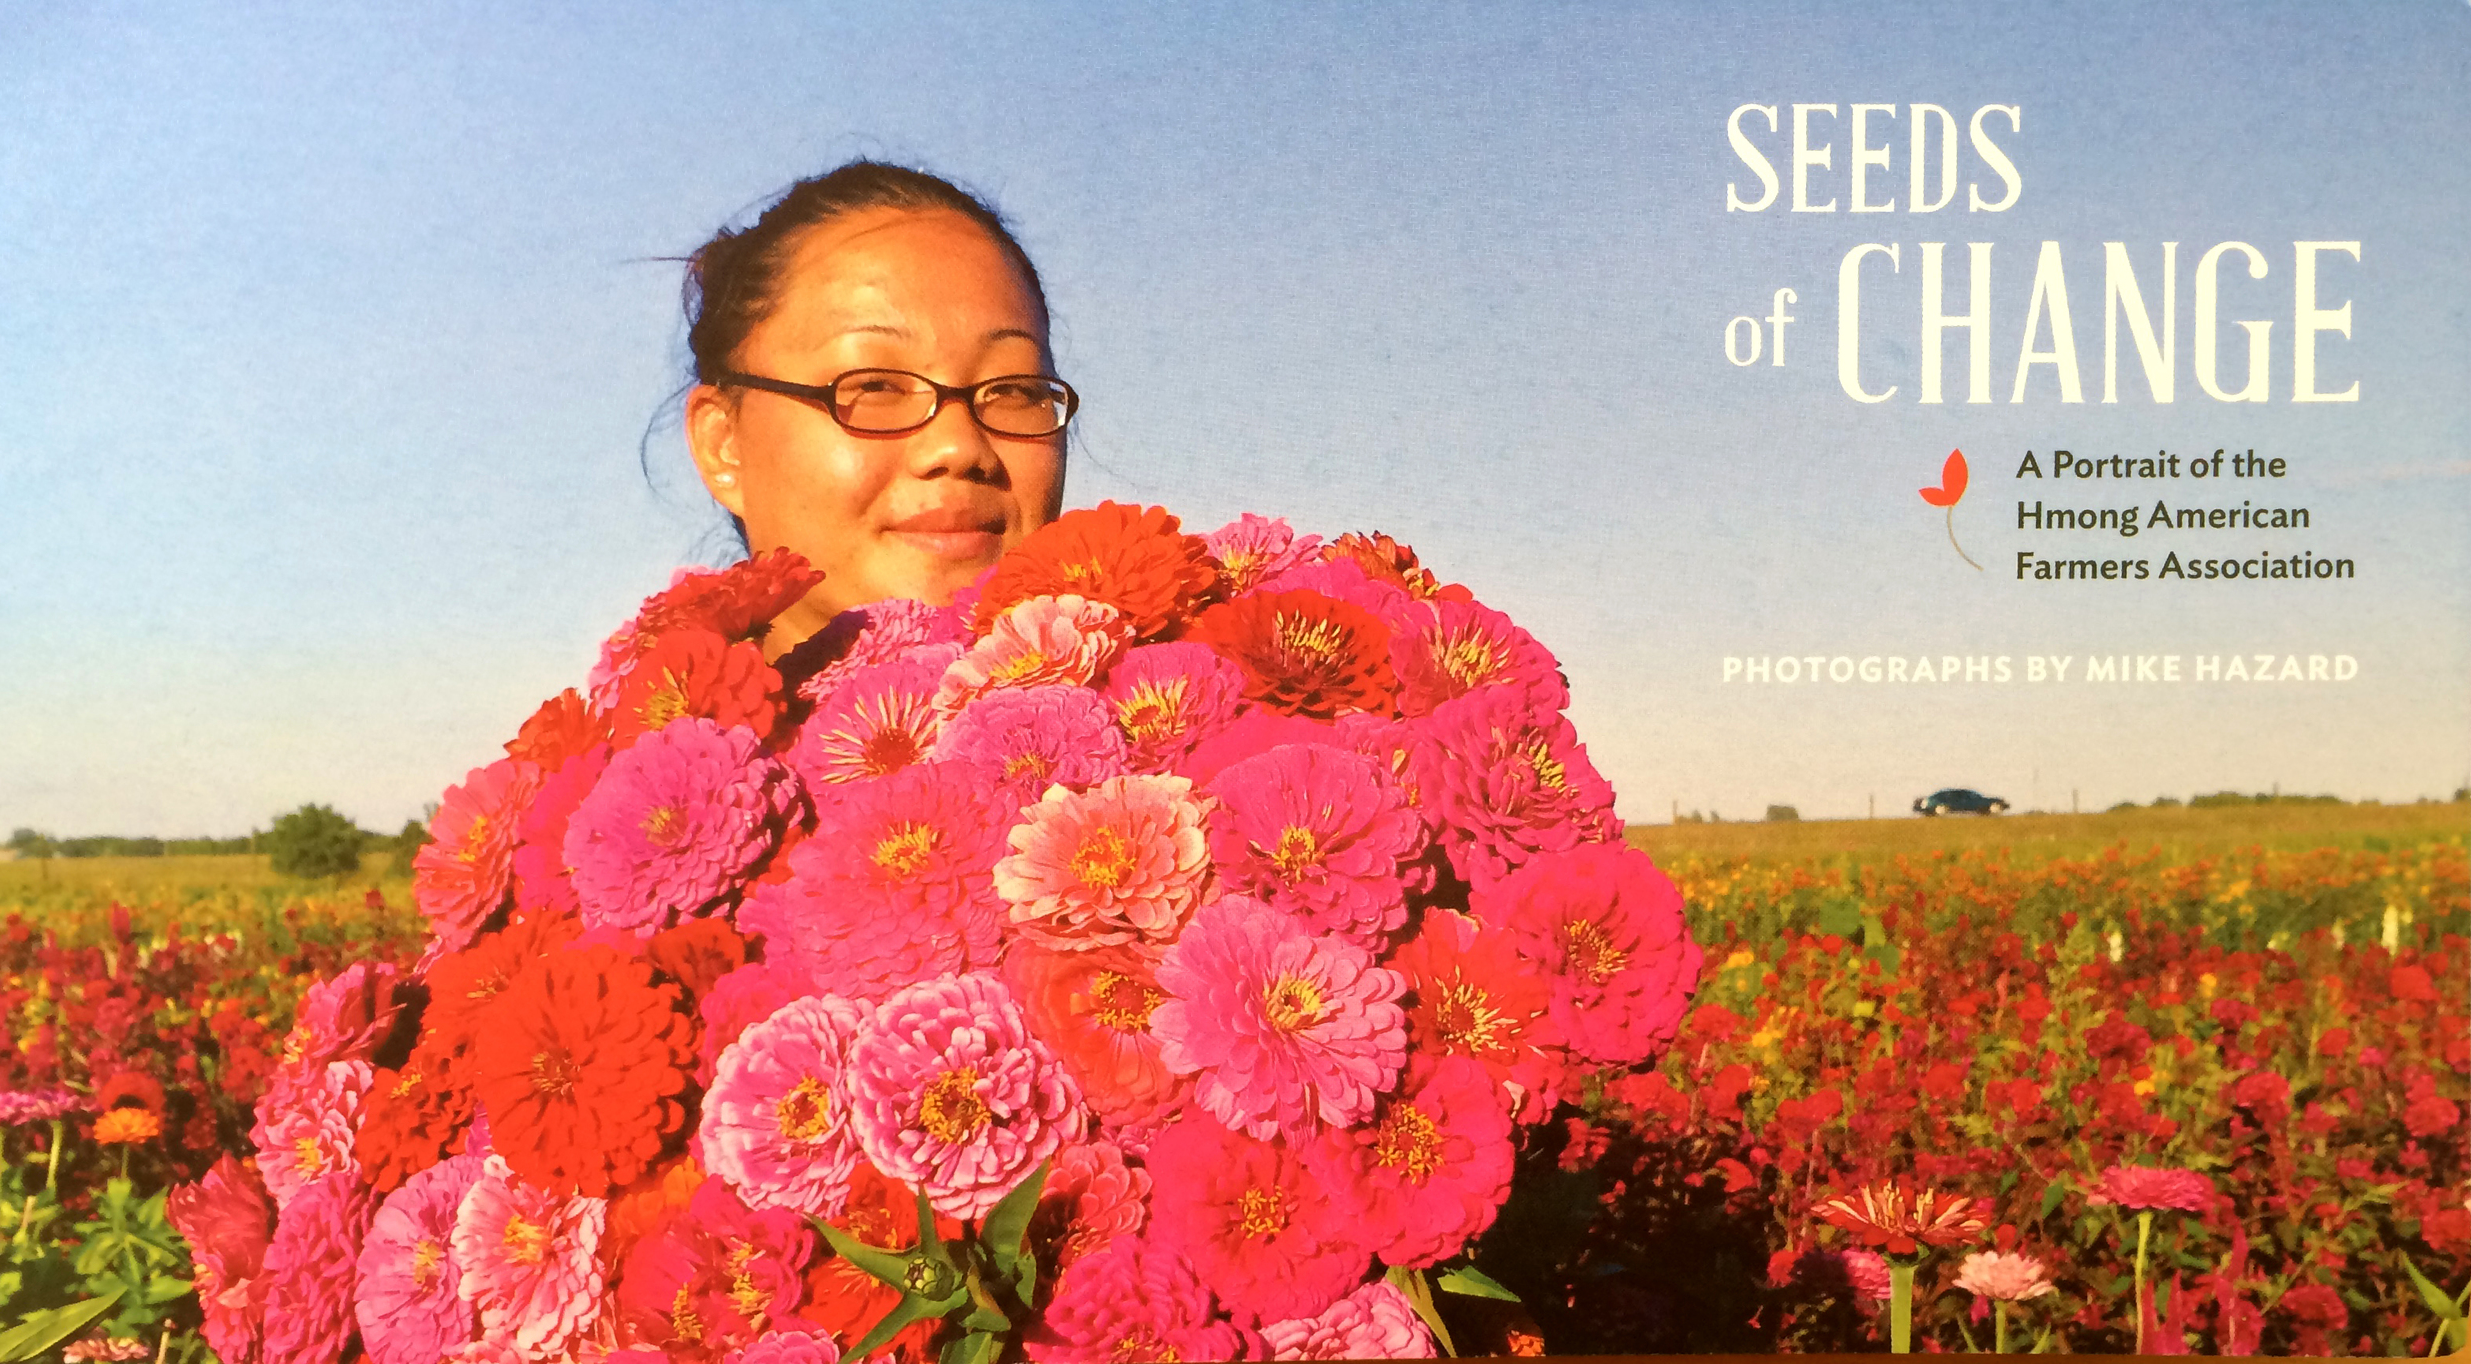 Promotional flyer for Seeds of Change Photography by Mike Hazard.